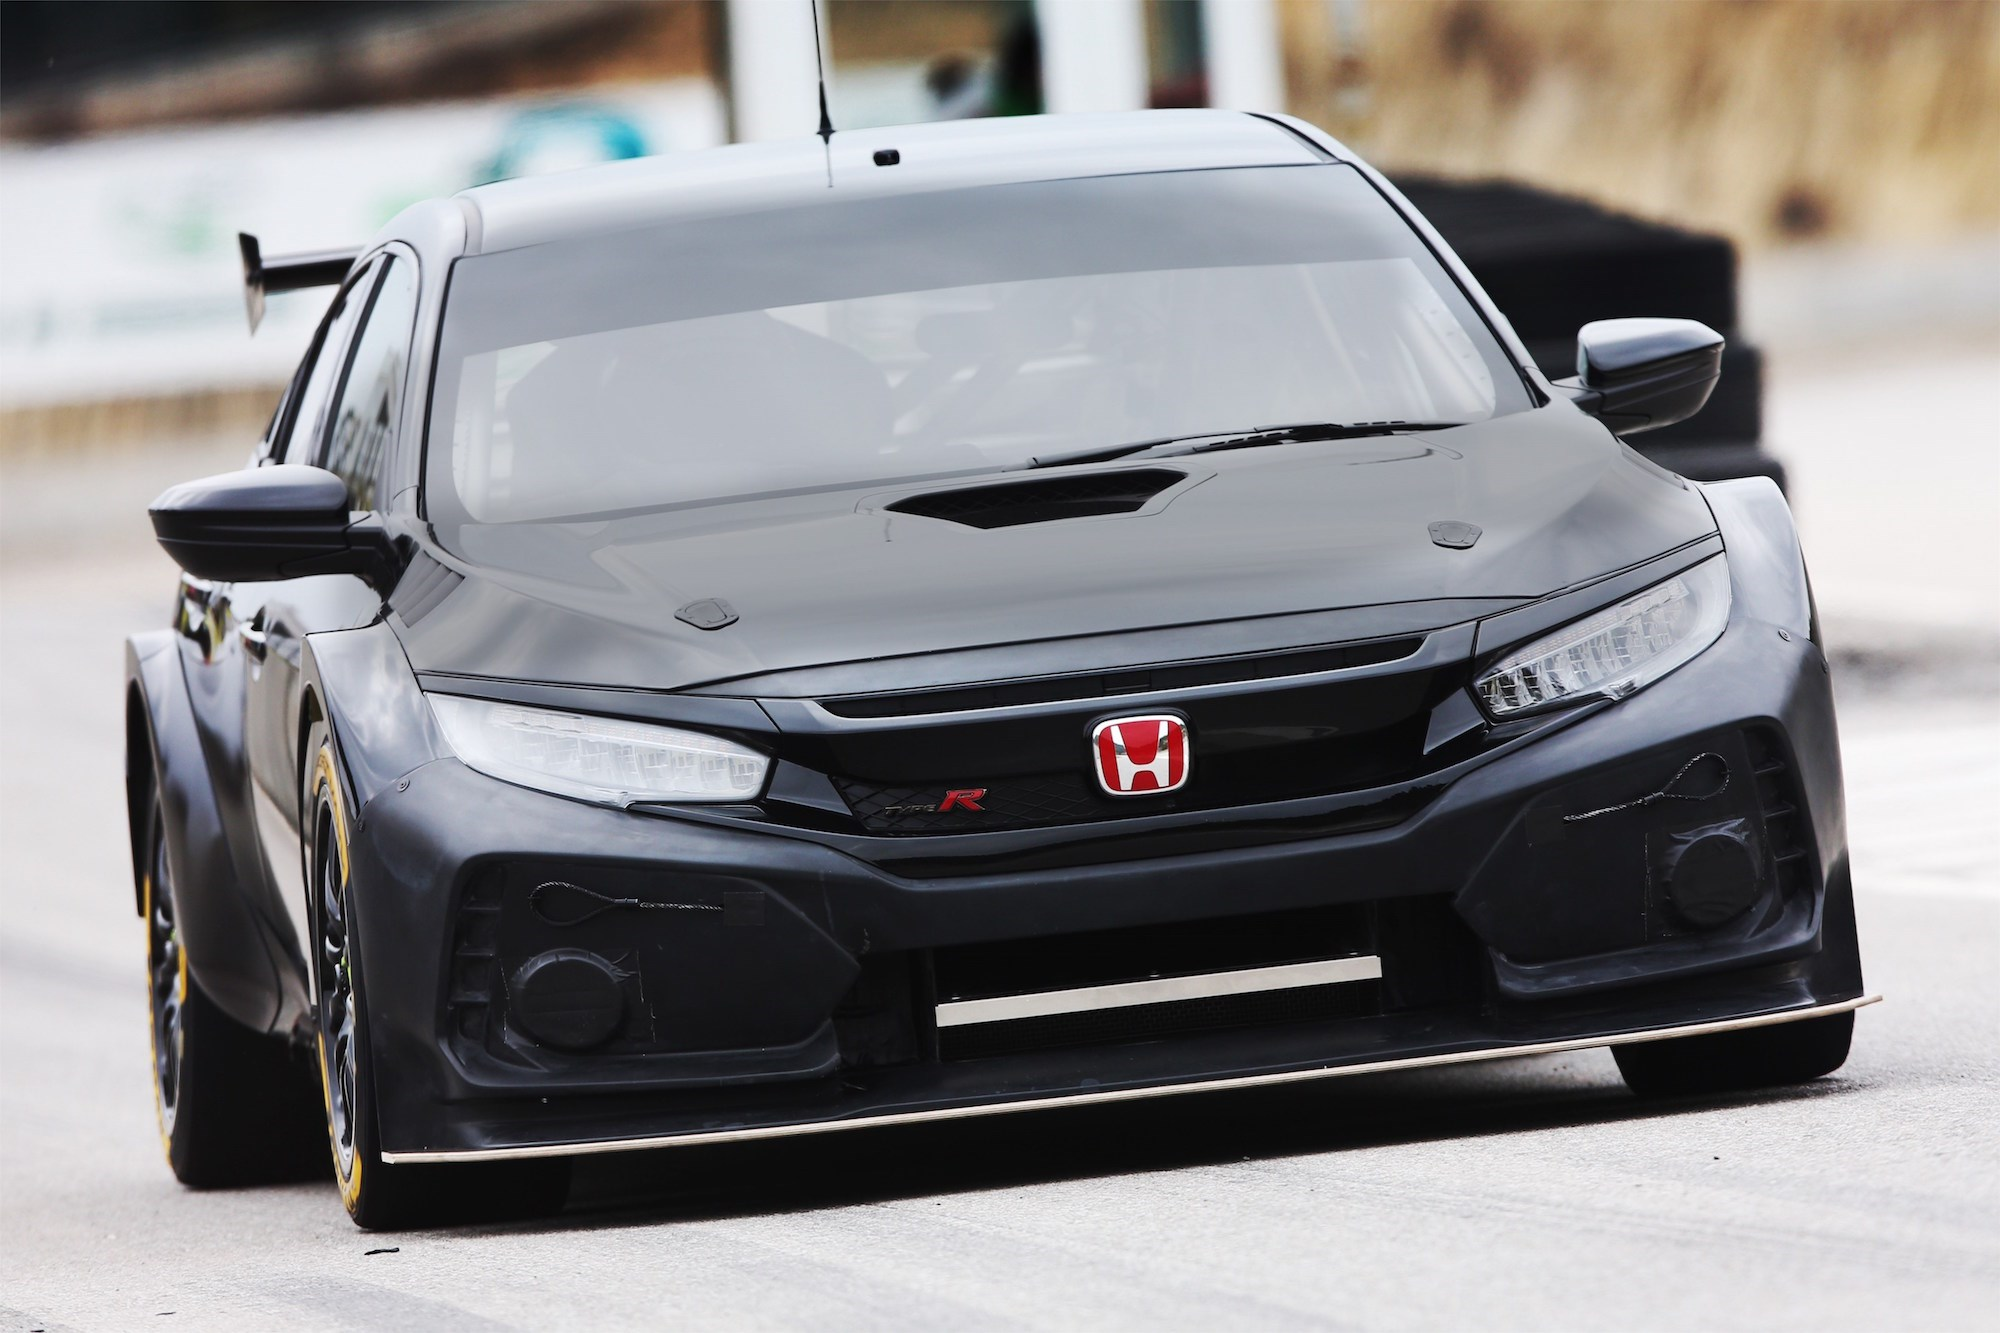 on acura tsx, honda cr-z type r, new honda suv, mitsubishi lancer evolution, new honda crv, new honda supra, new acura type r, honda prelude, honda cr-x, acura rsx, new honda type r 2015, honda accord, new honda hr, the next type r, nissan silvia, fn2 type r, honda civic si, honda nsx, hondacivic type r, new honda s2000, honda cr-z, honda civic hybrid, red type r, honda integra, honda cr-v, new integra type r, nissan skyline gt-r, honda accord type r, honda city, toyota ae86, new honda audi, honda nsx type r, acura csx, new civic sport, honda fit, new honda jdm, new honda vtec, new honda accord, eighth generation honda civic, honda s2000,